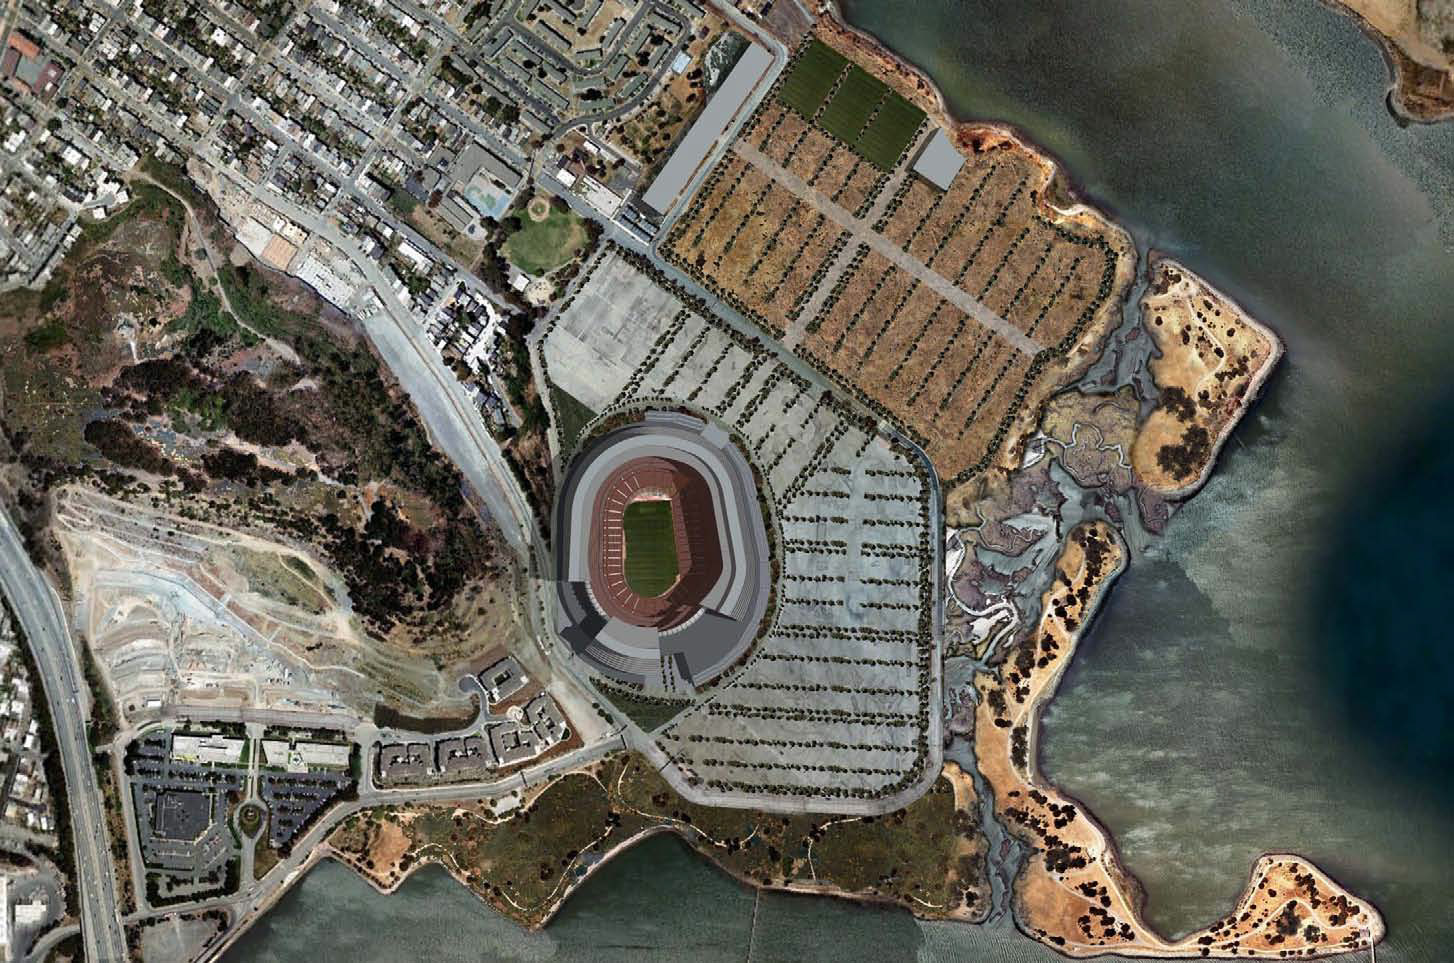 Candlestick Re-Imagined